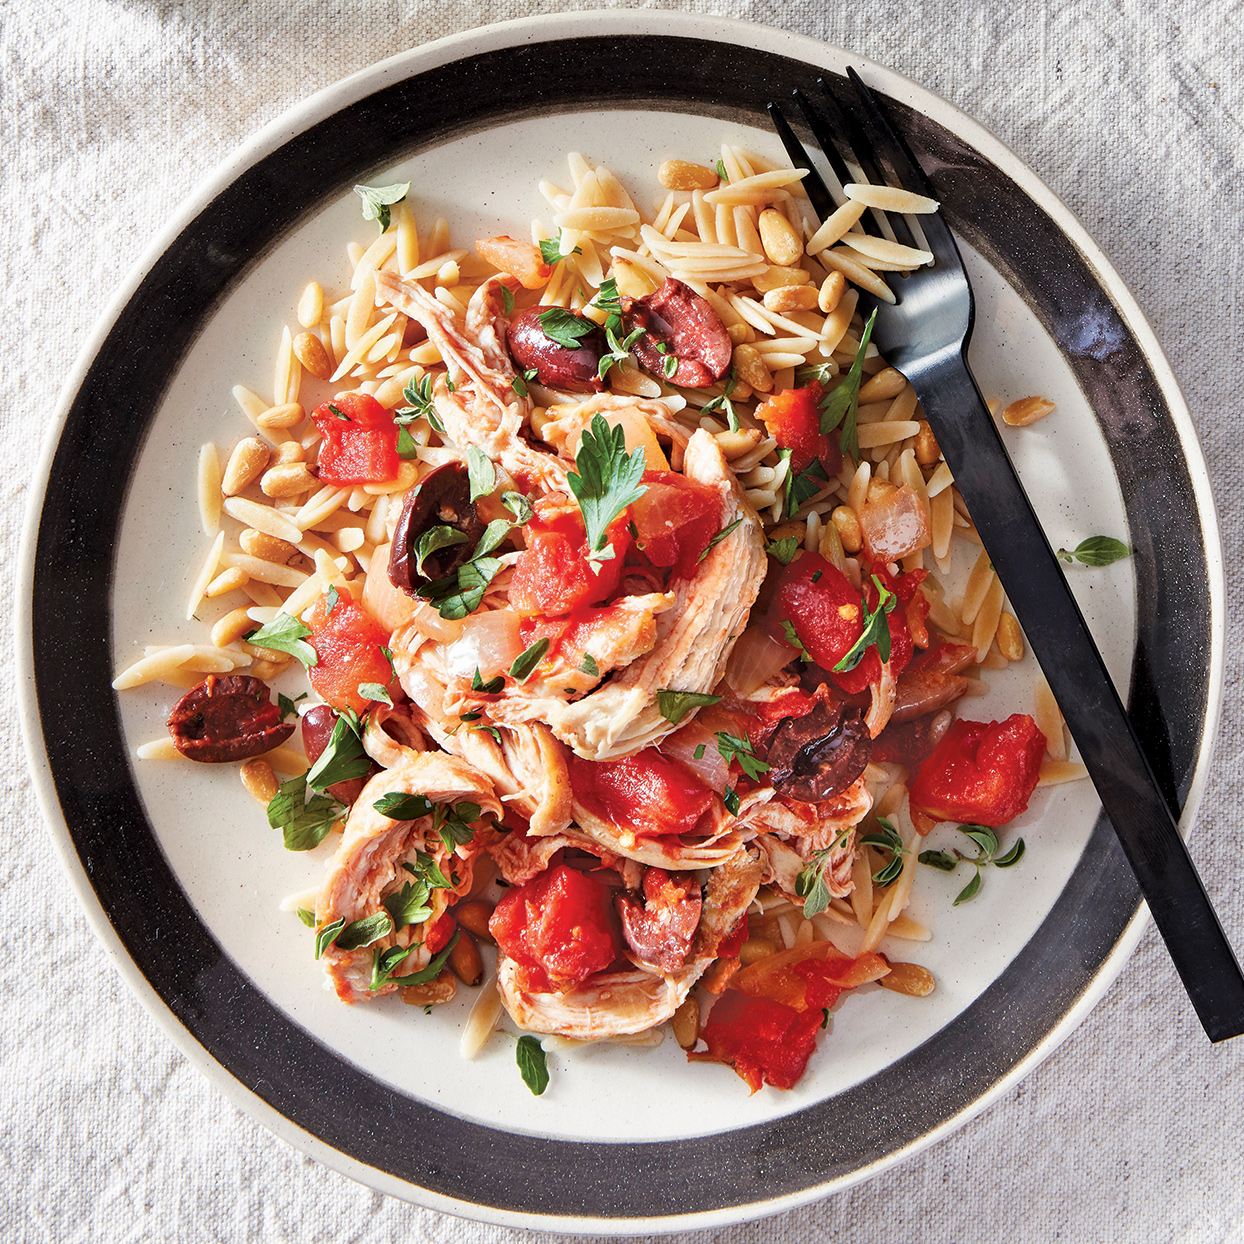 Let your slow cooker do the bulk of the work and end up with a meal that fulfills all your Mediterranean-food cravings. The mix of onions, tomatoes, kalamata olives, oregano and parsley adds pleasing acidity to the browned chicken, while toasted pine nuts lend interest to the orzo. Source: Everyday Slow Cooker